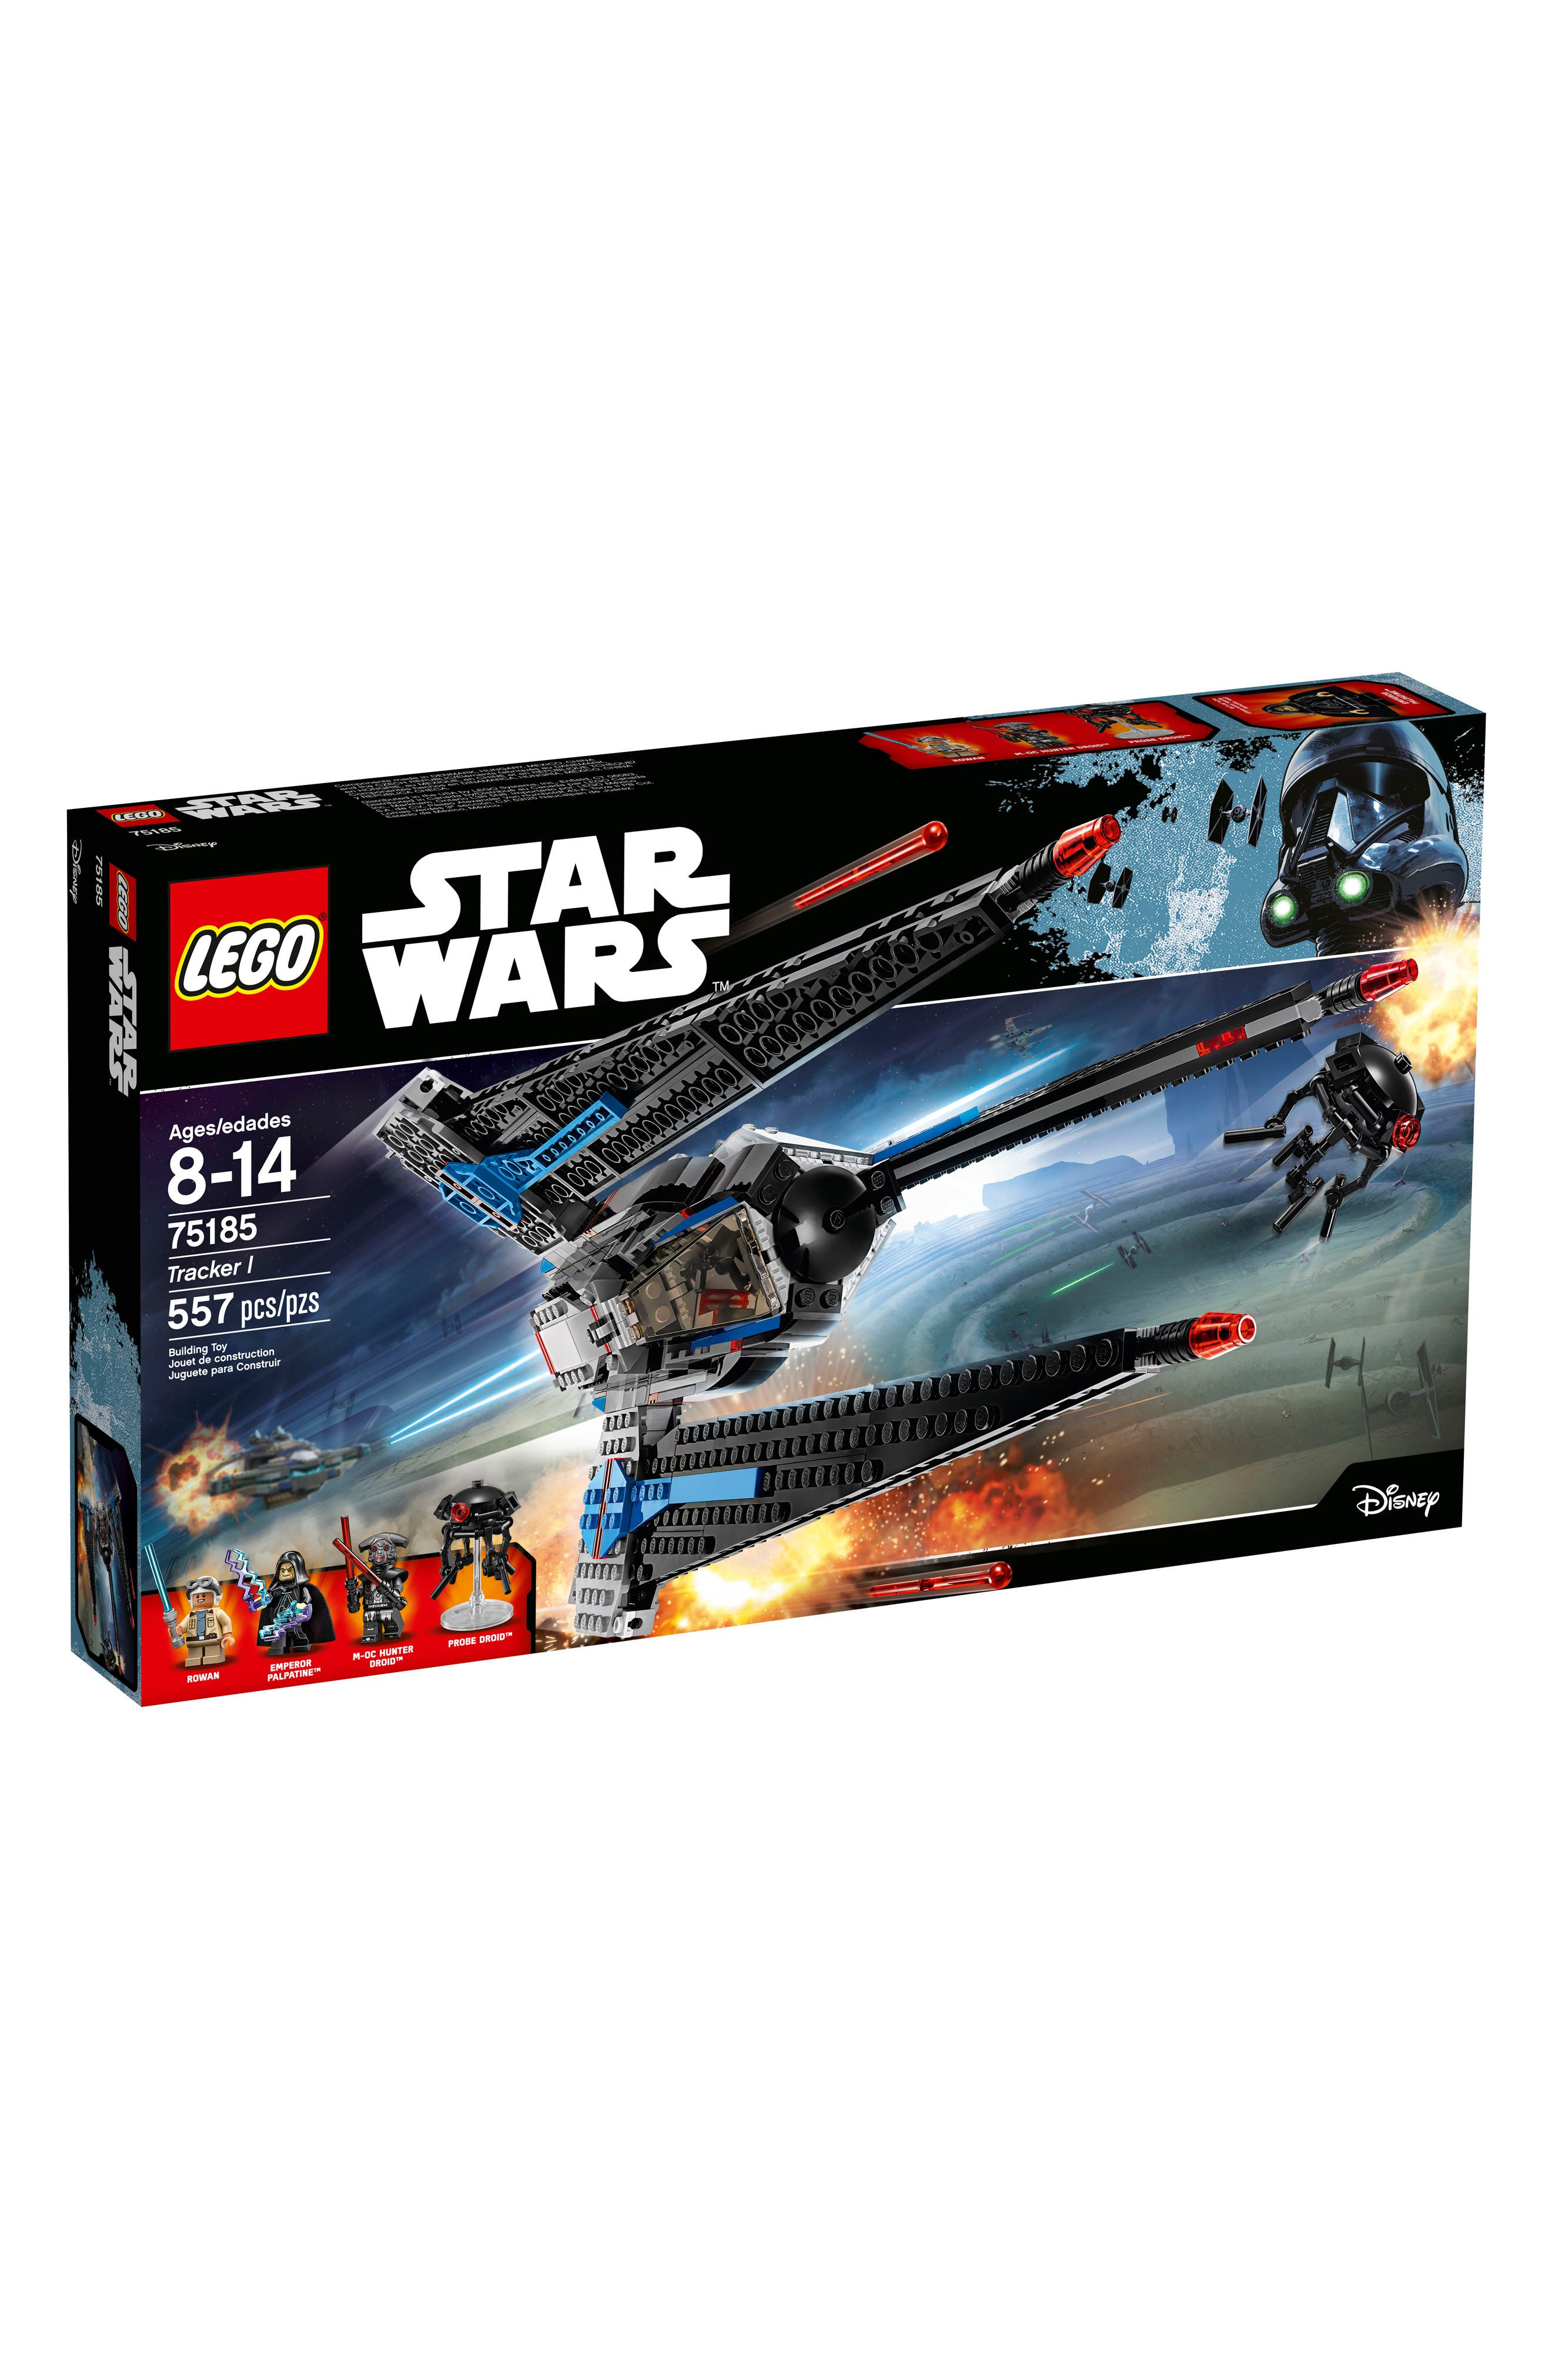 Star Wars<sup>™</sup>: The Freemaker Adventures Tracker I Play Set - 75185,                             Main thumbnail 1, color,                             001